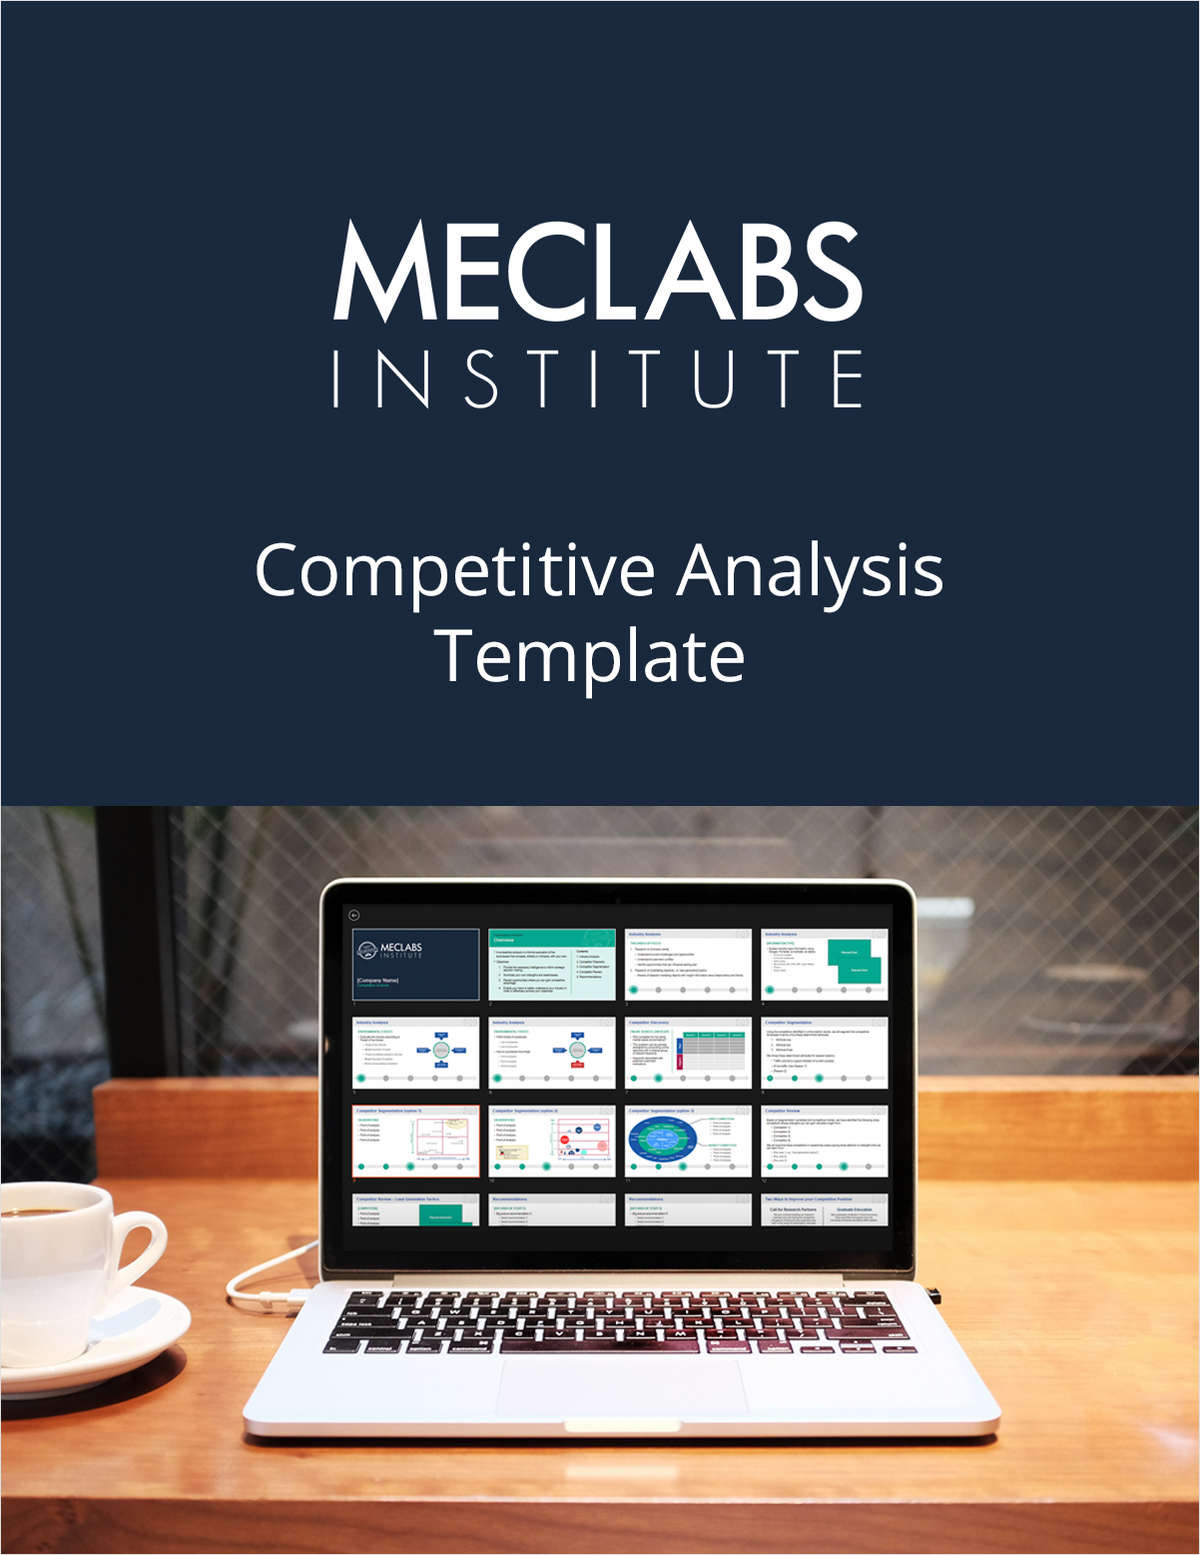 The Competitive Analysis Template from MECLABS